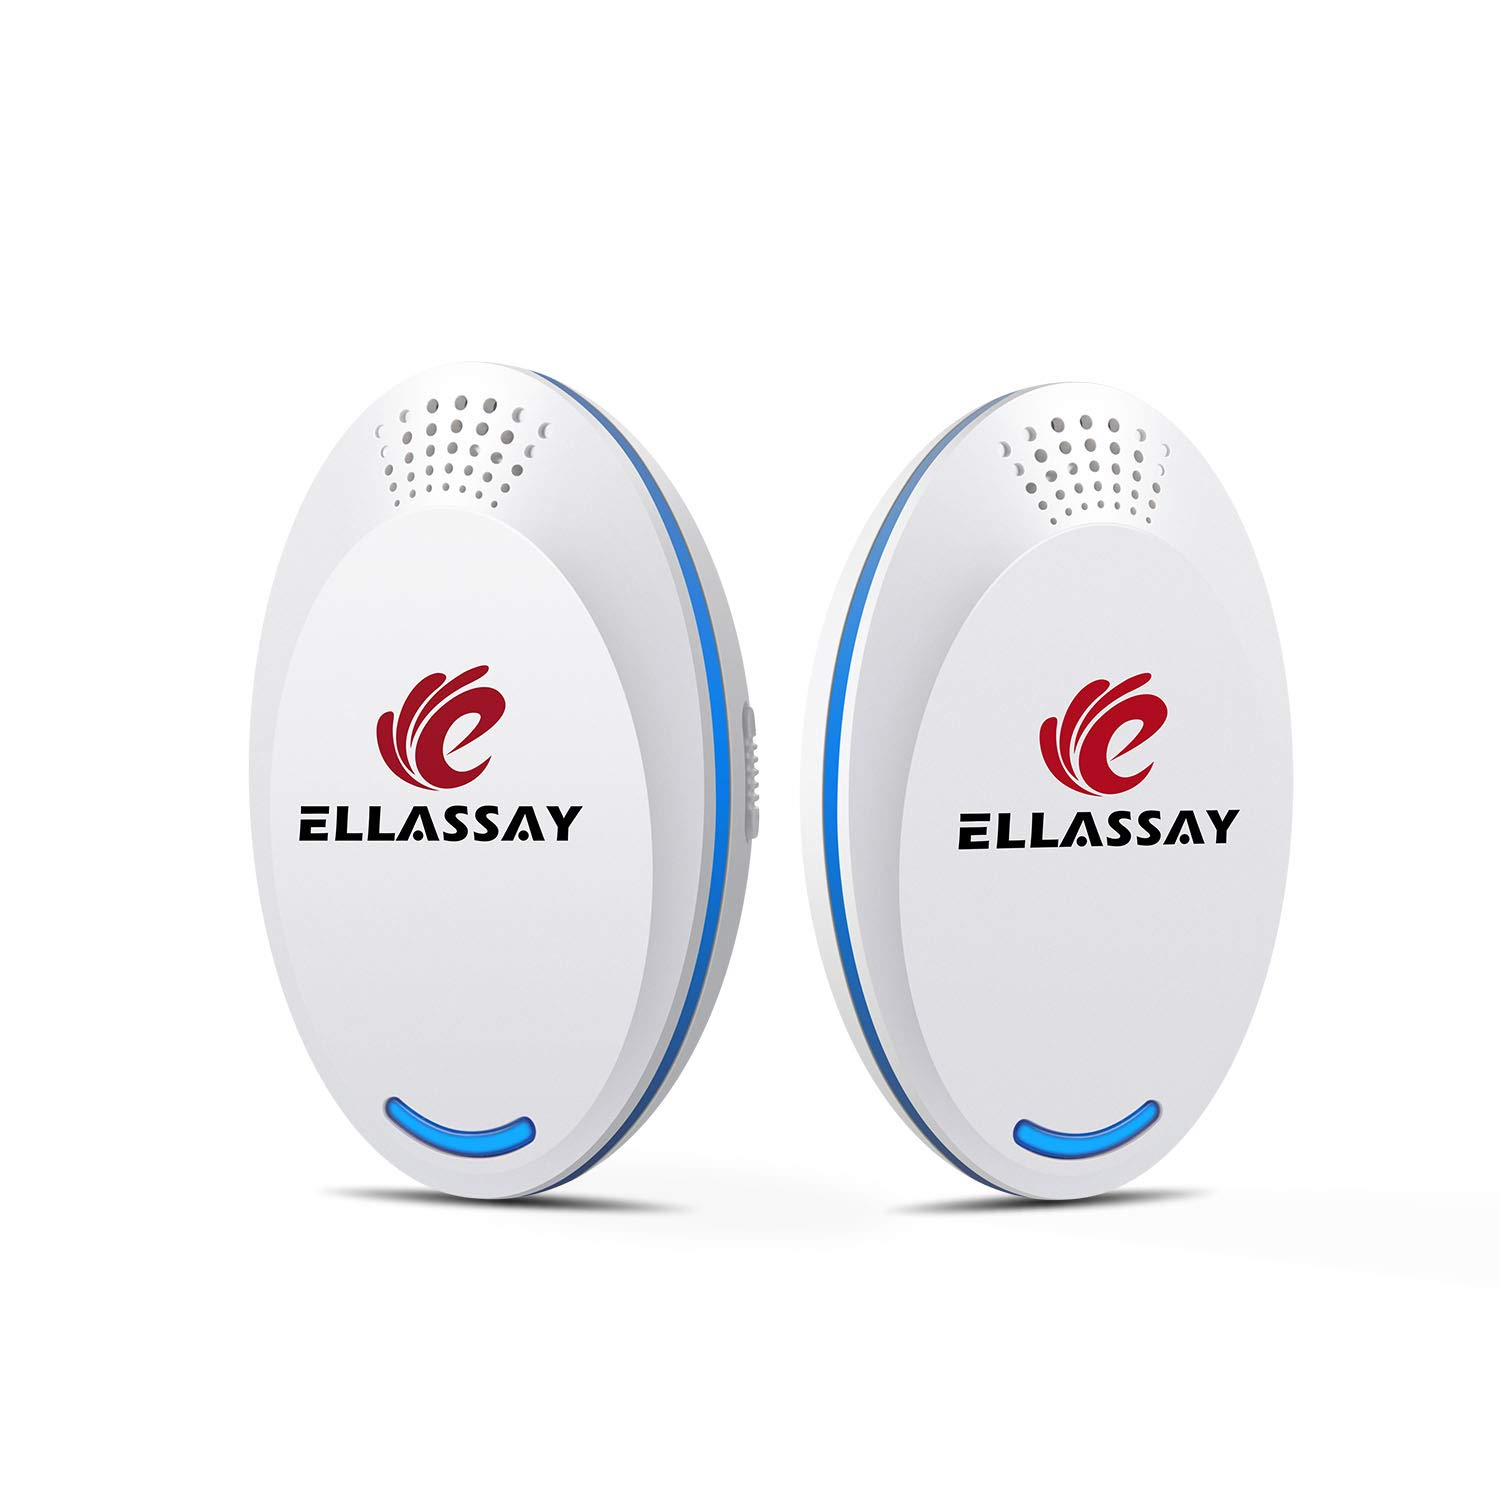 ELLASSAY Electronic Ultrasonic Pest Repeller Plug in,2 Pack Indoor Ultrasound Repeller Against Rats, Mouse, Spider, Ants, Bed Bugs, Fleas, Cockroaches, Flies, Moths, Mosquito Easy to Use by ELLASSAY